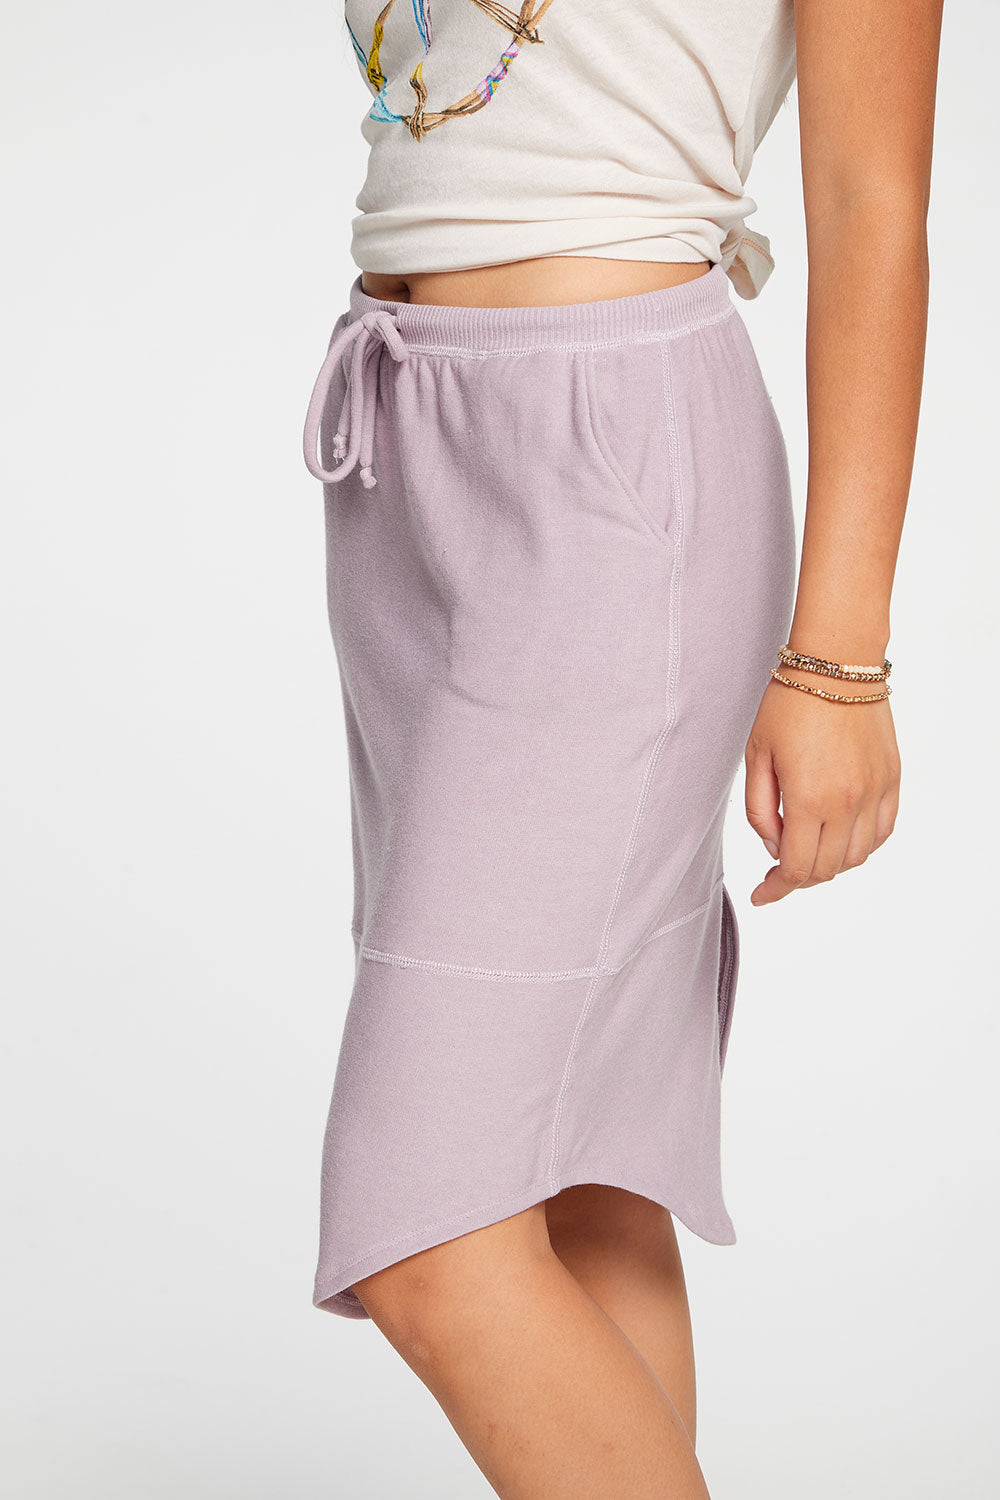 Cozy Knit Shirttail Midi Skirt in Hydrangea WOMENS chaserbrand4.myshopify.com